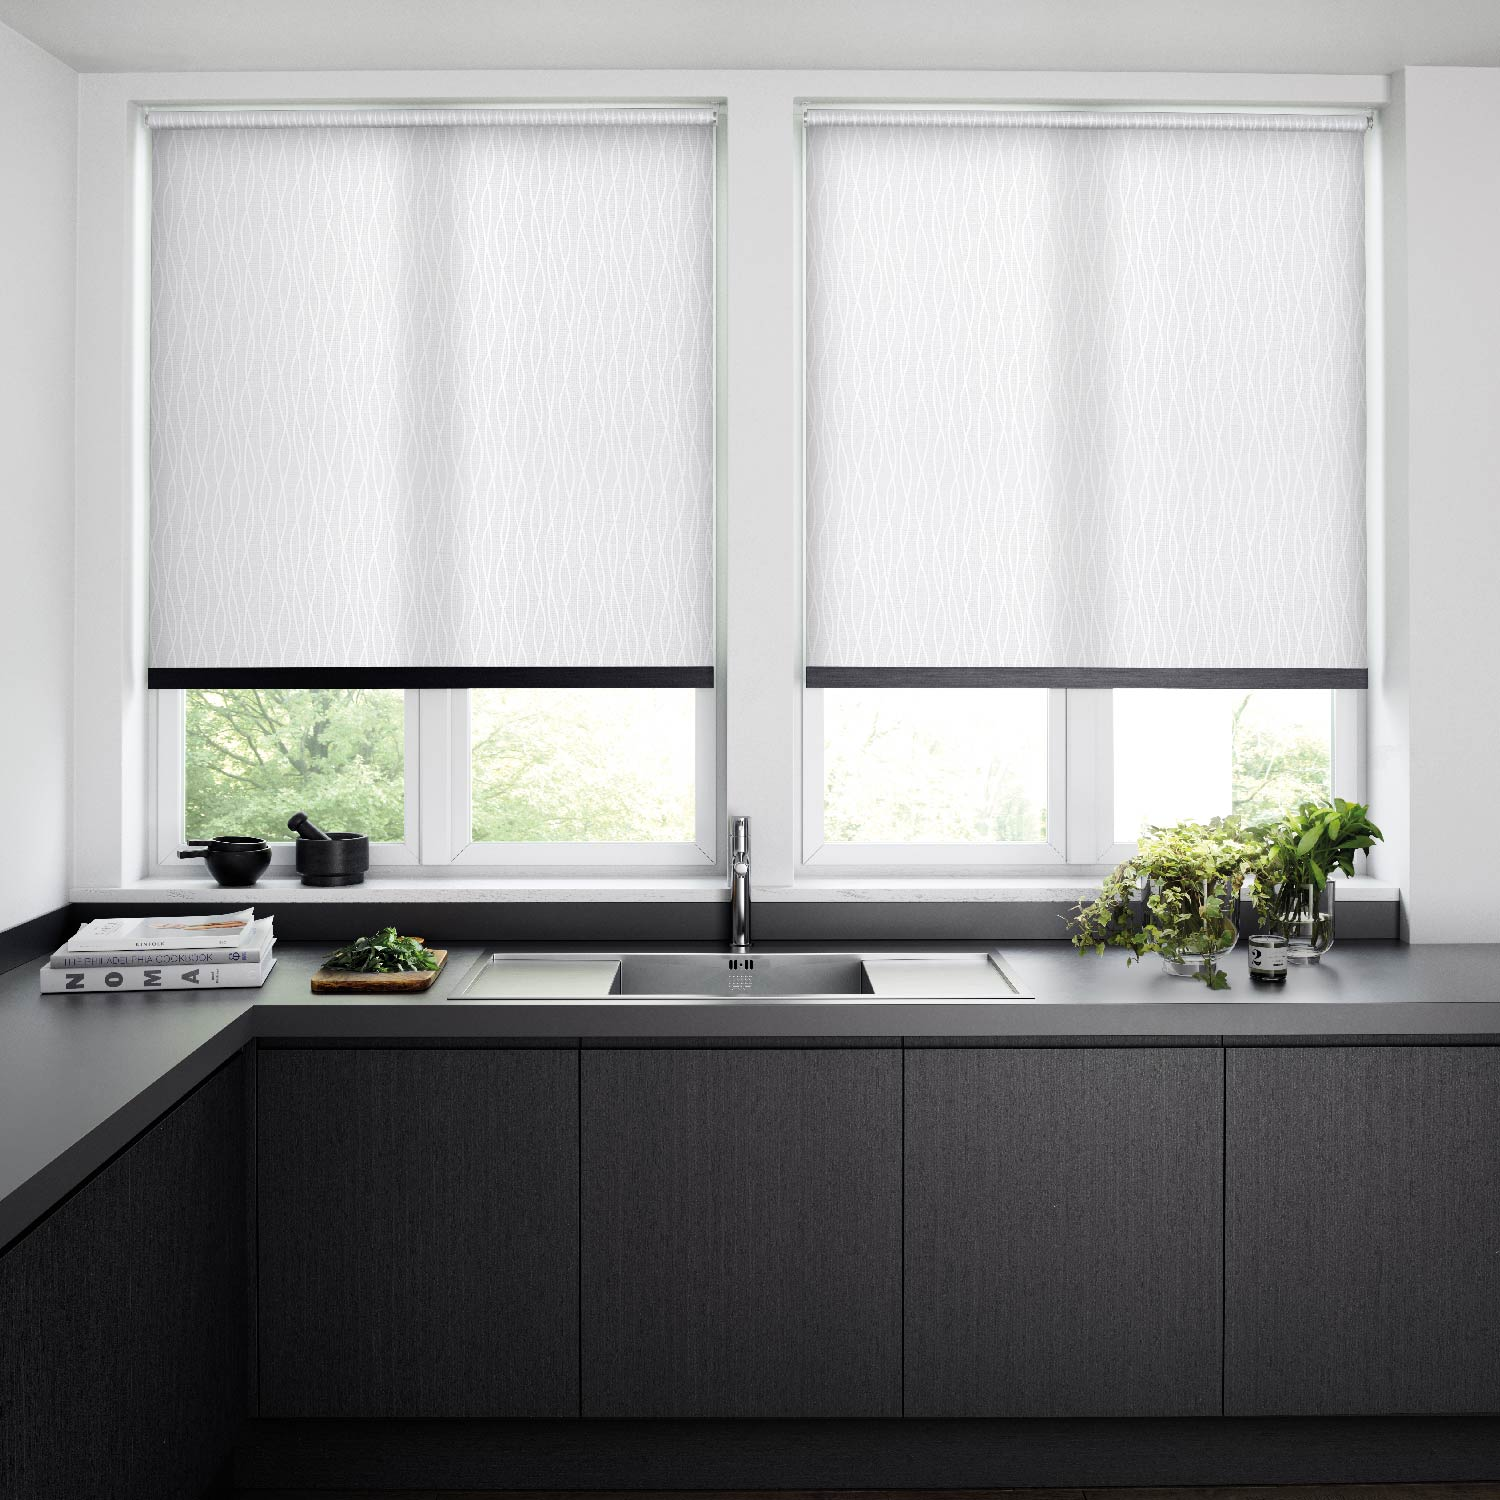 Roller Blinds - The clean lines of a roller blind offers elegant yet functional window blind solution. Coloured and printed fabrics merged with an imaginative collaboration of designs presents a diverse fabric portfolio.Features–Stunning roller blind fabric designs–A tremendous collection of colours–Translucent fabrics to gently filter the sunshine–Blackout fabrics to gently filter the sunshine –Energy saving roller blind fabrics